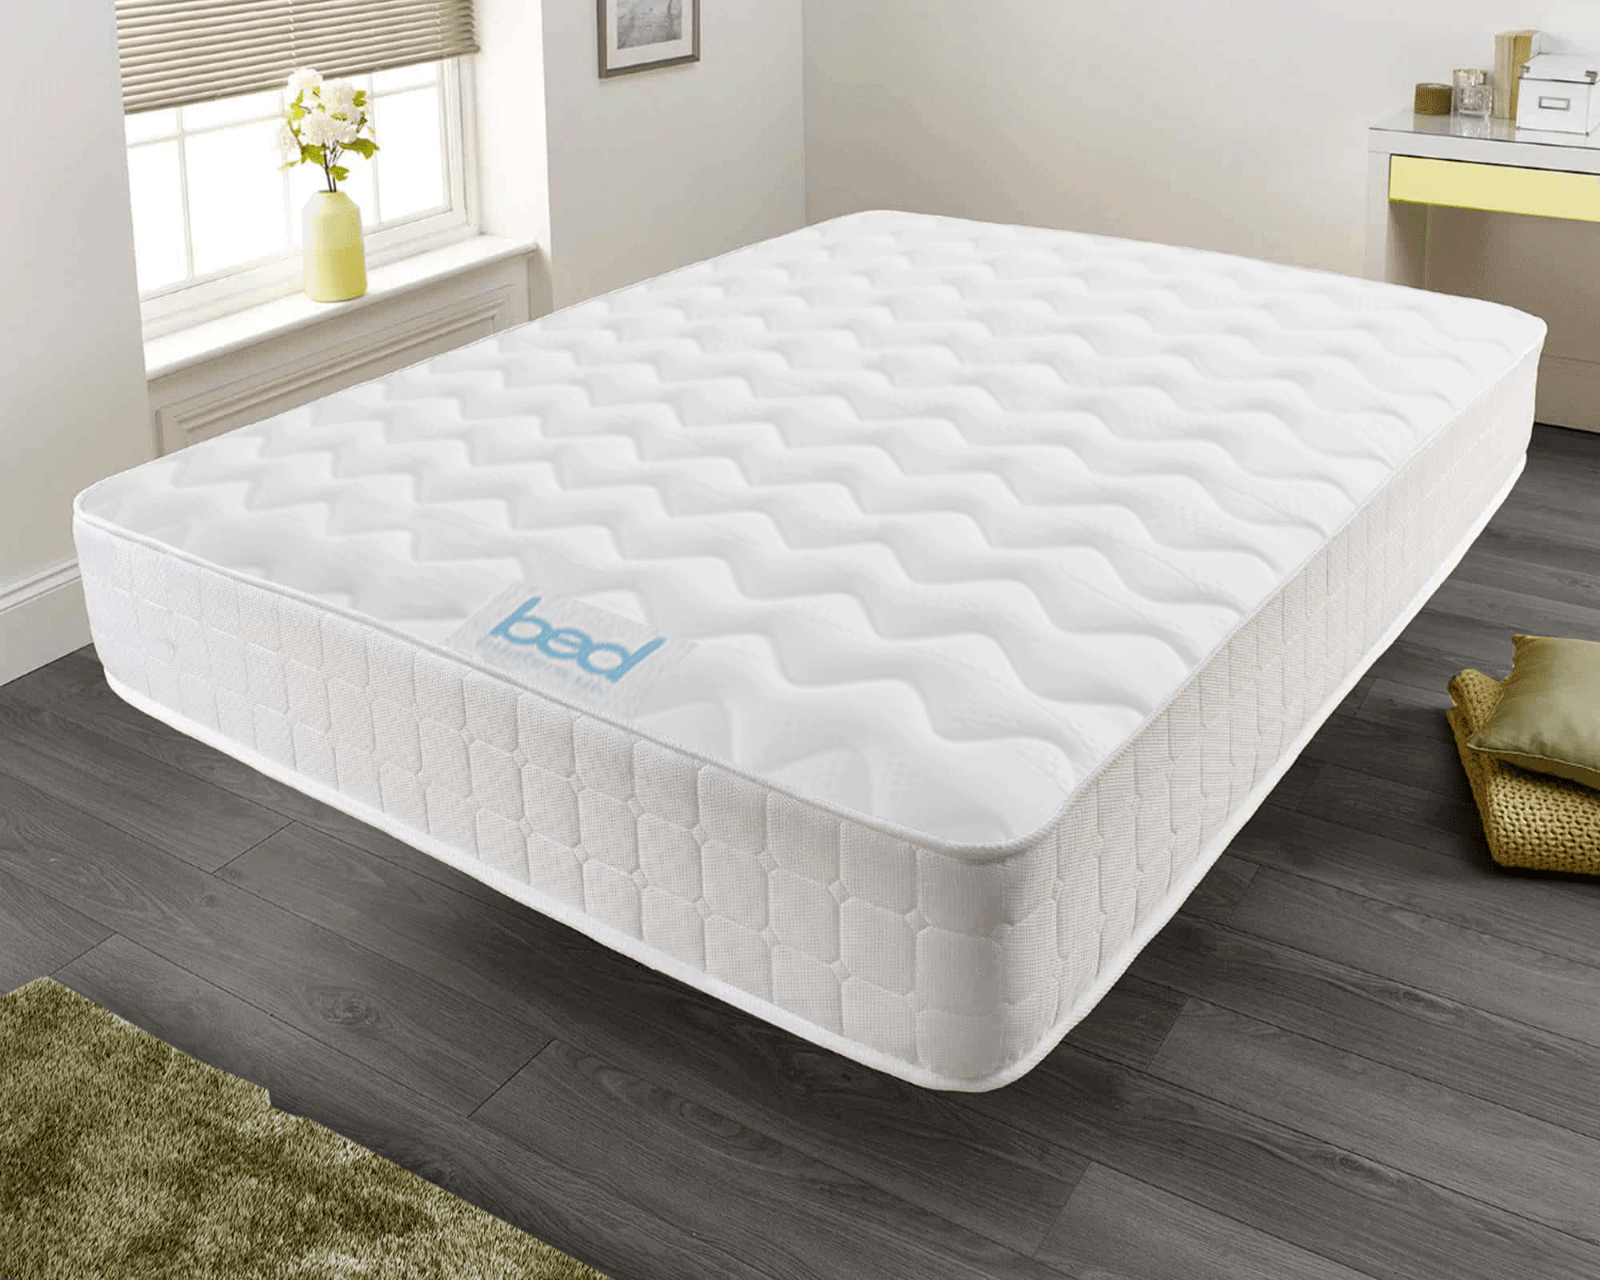 Small Super King Mattress Details About Memory Spring Memory Foam Single Small Double King Size Super King Mattress